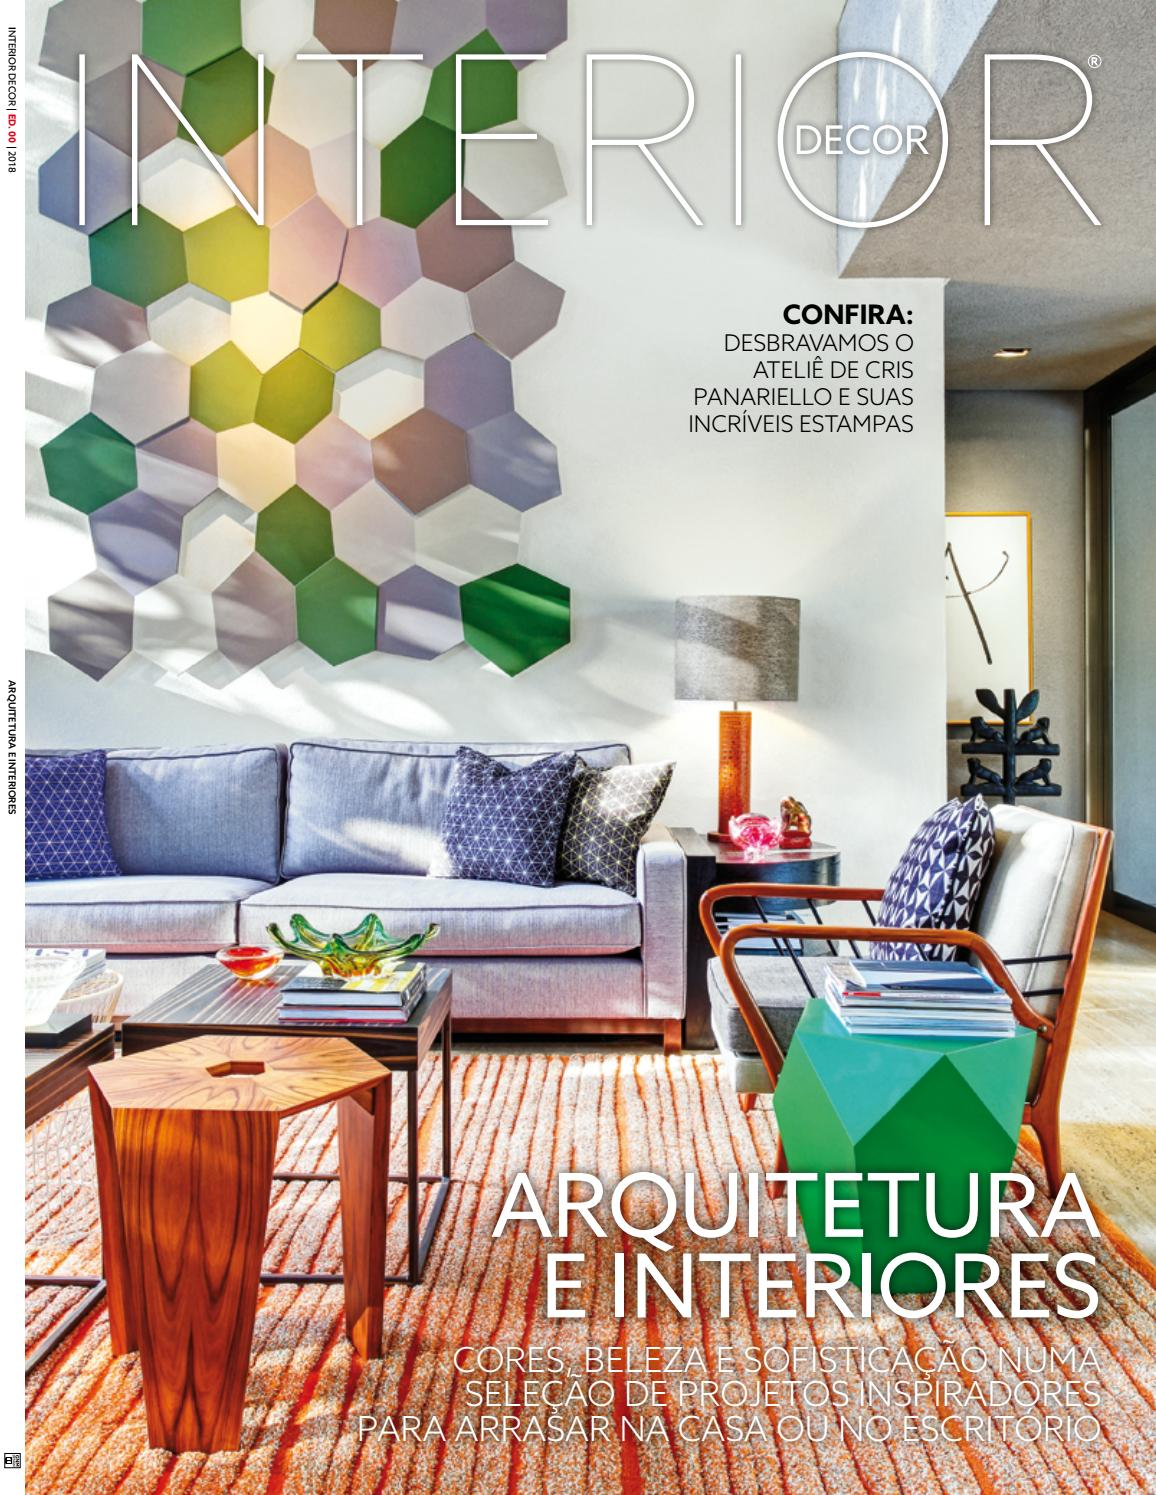 6dd2555a9 REVISTA INTERIOR DECOR ED. 01 by INTERIOR DECOR - issuu